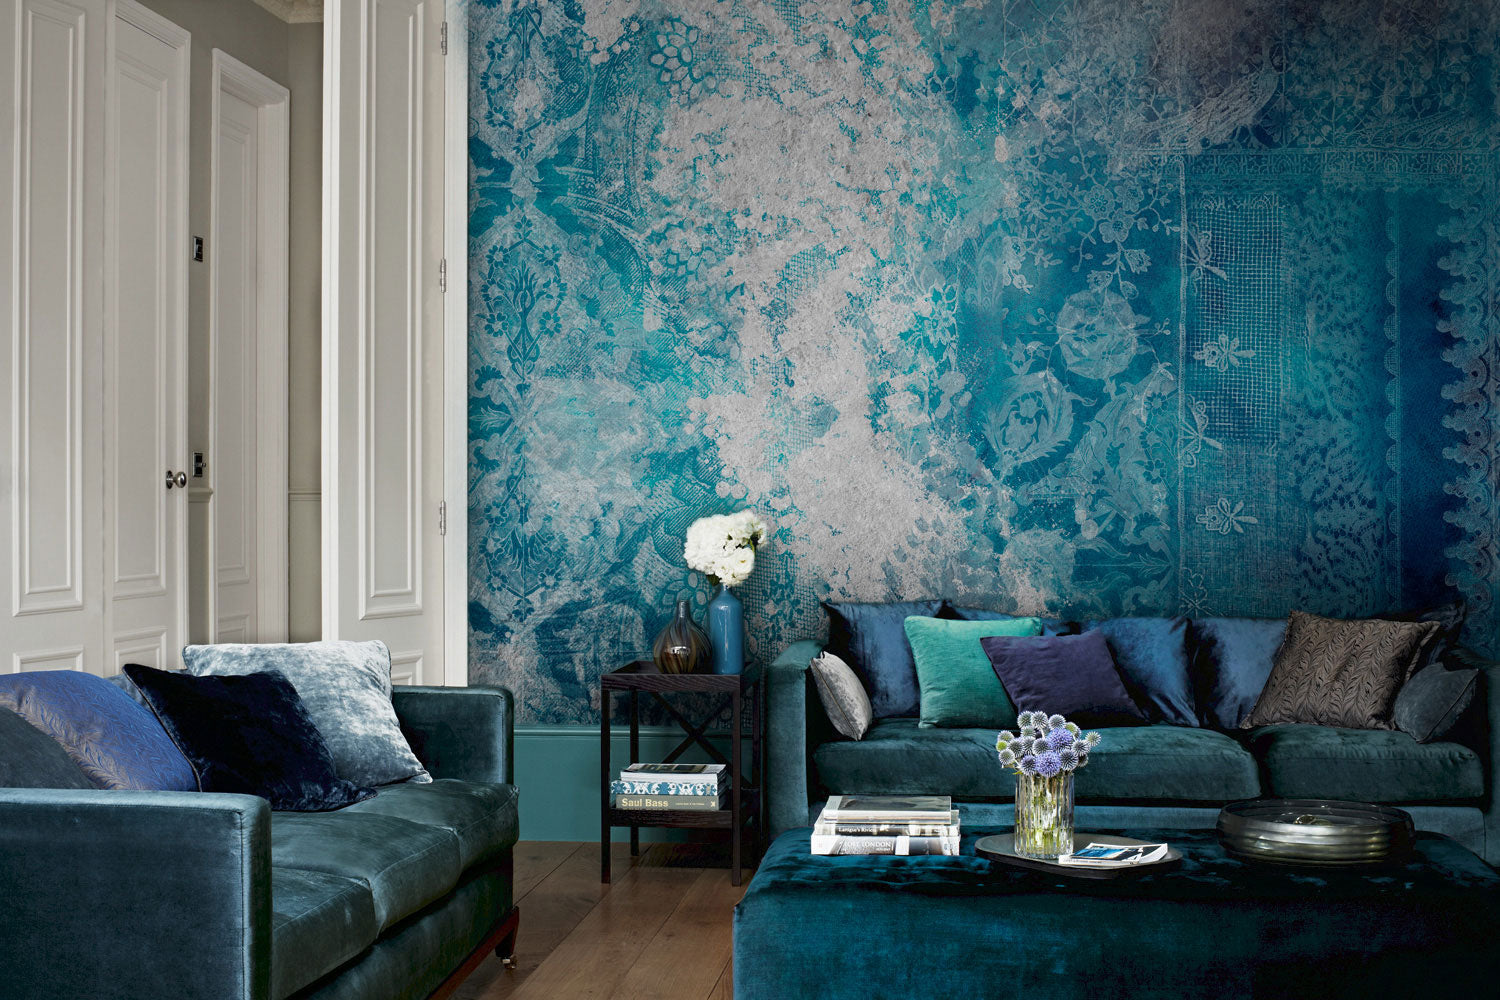 Lace Grunge Teal Wall Mural by Back to the Wall